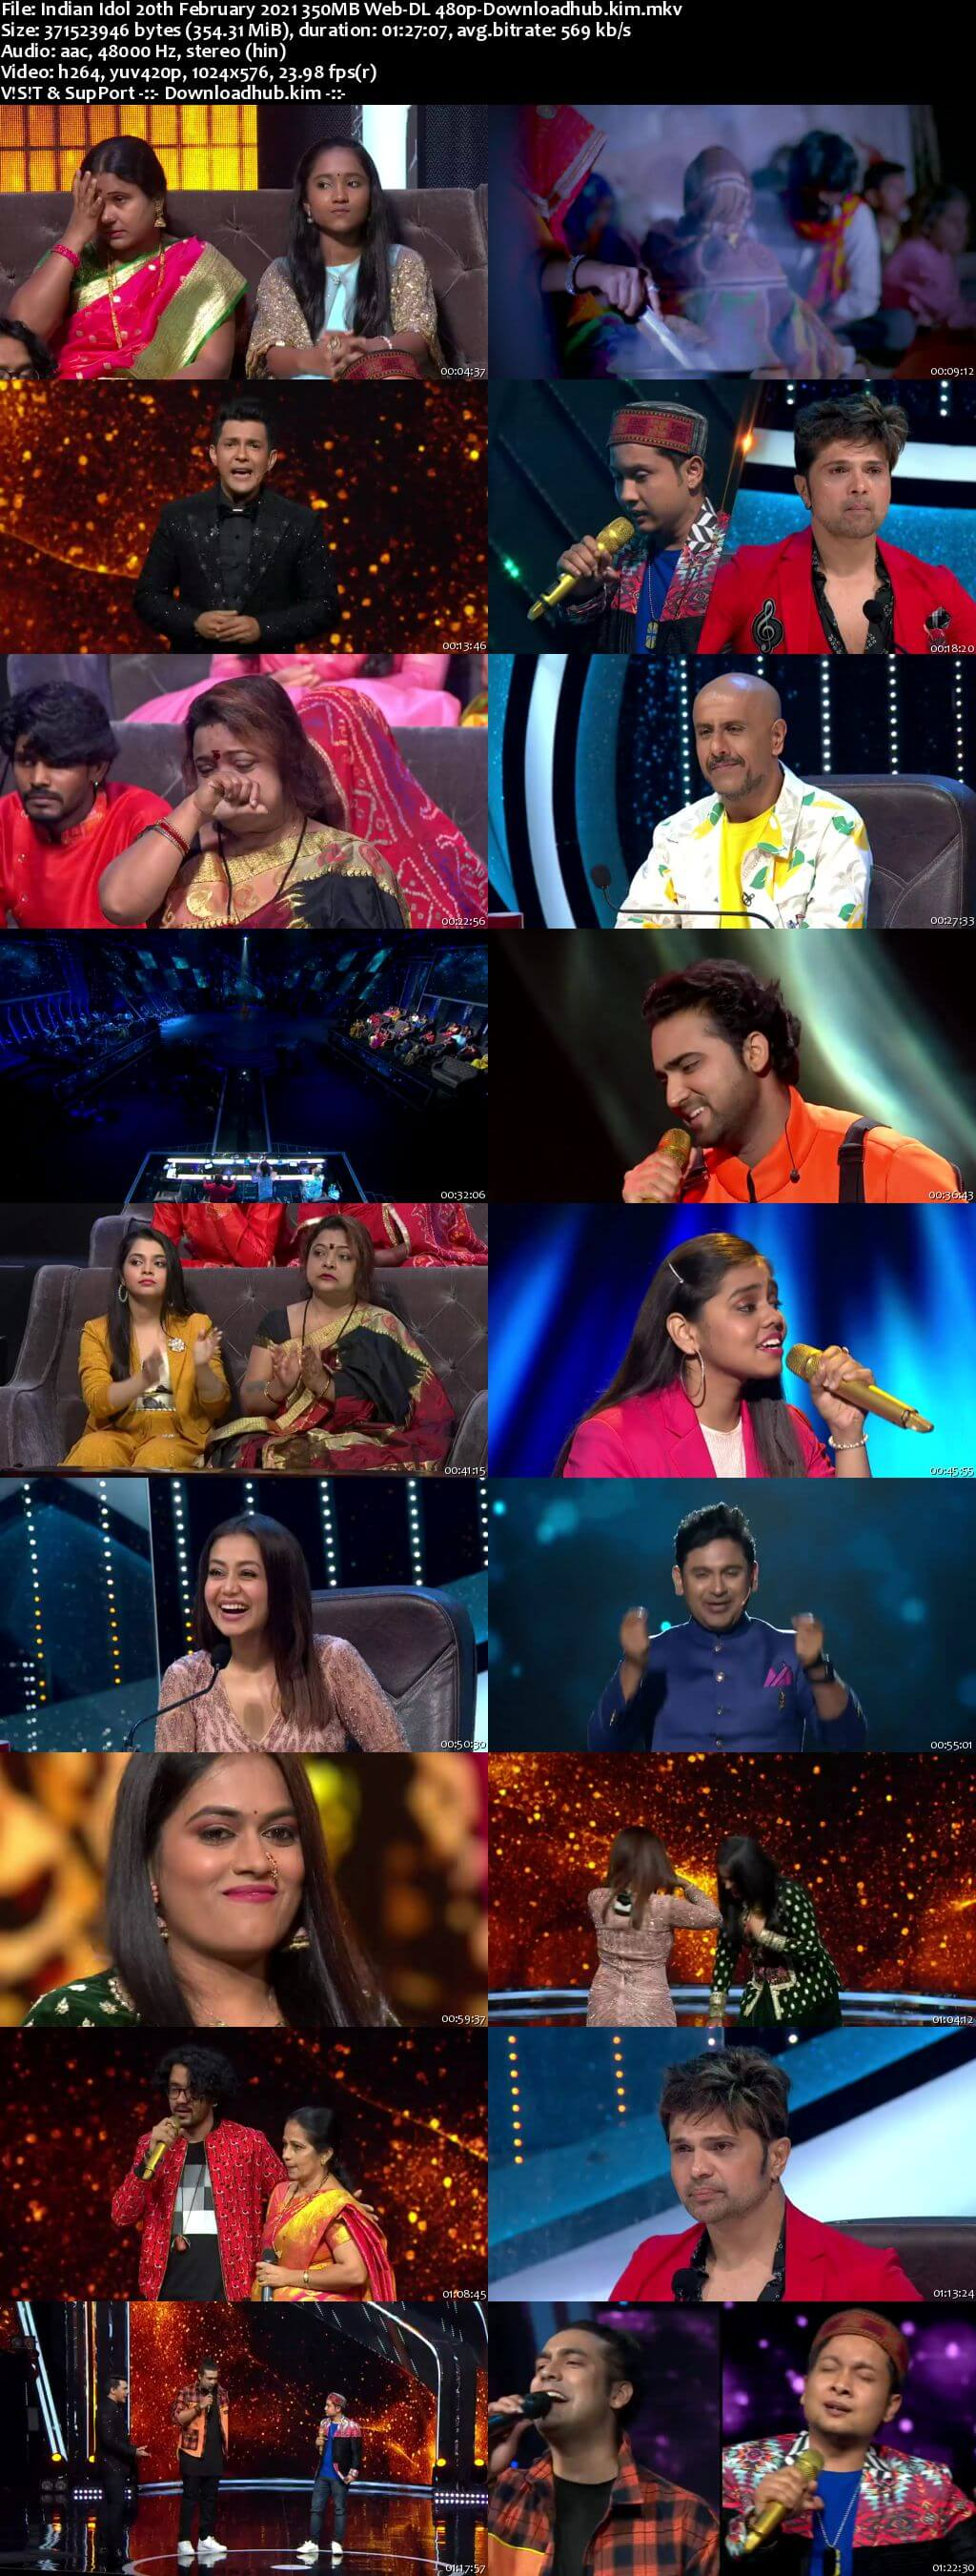 Indian Idol 20 February 2021 Episode 25 Web-DL 480p